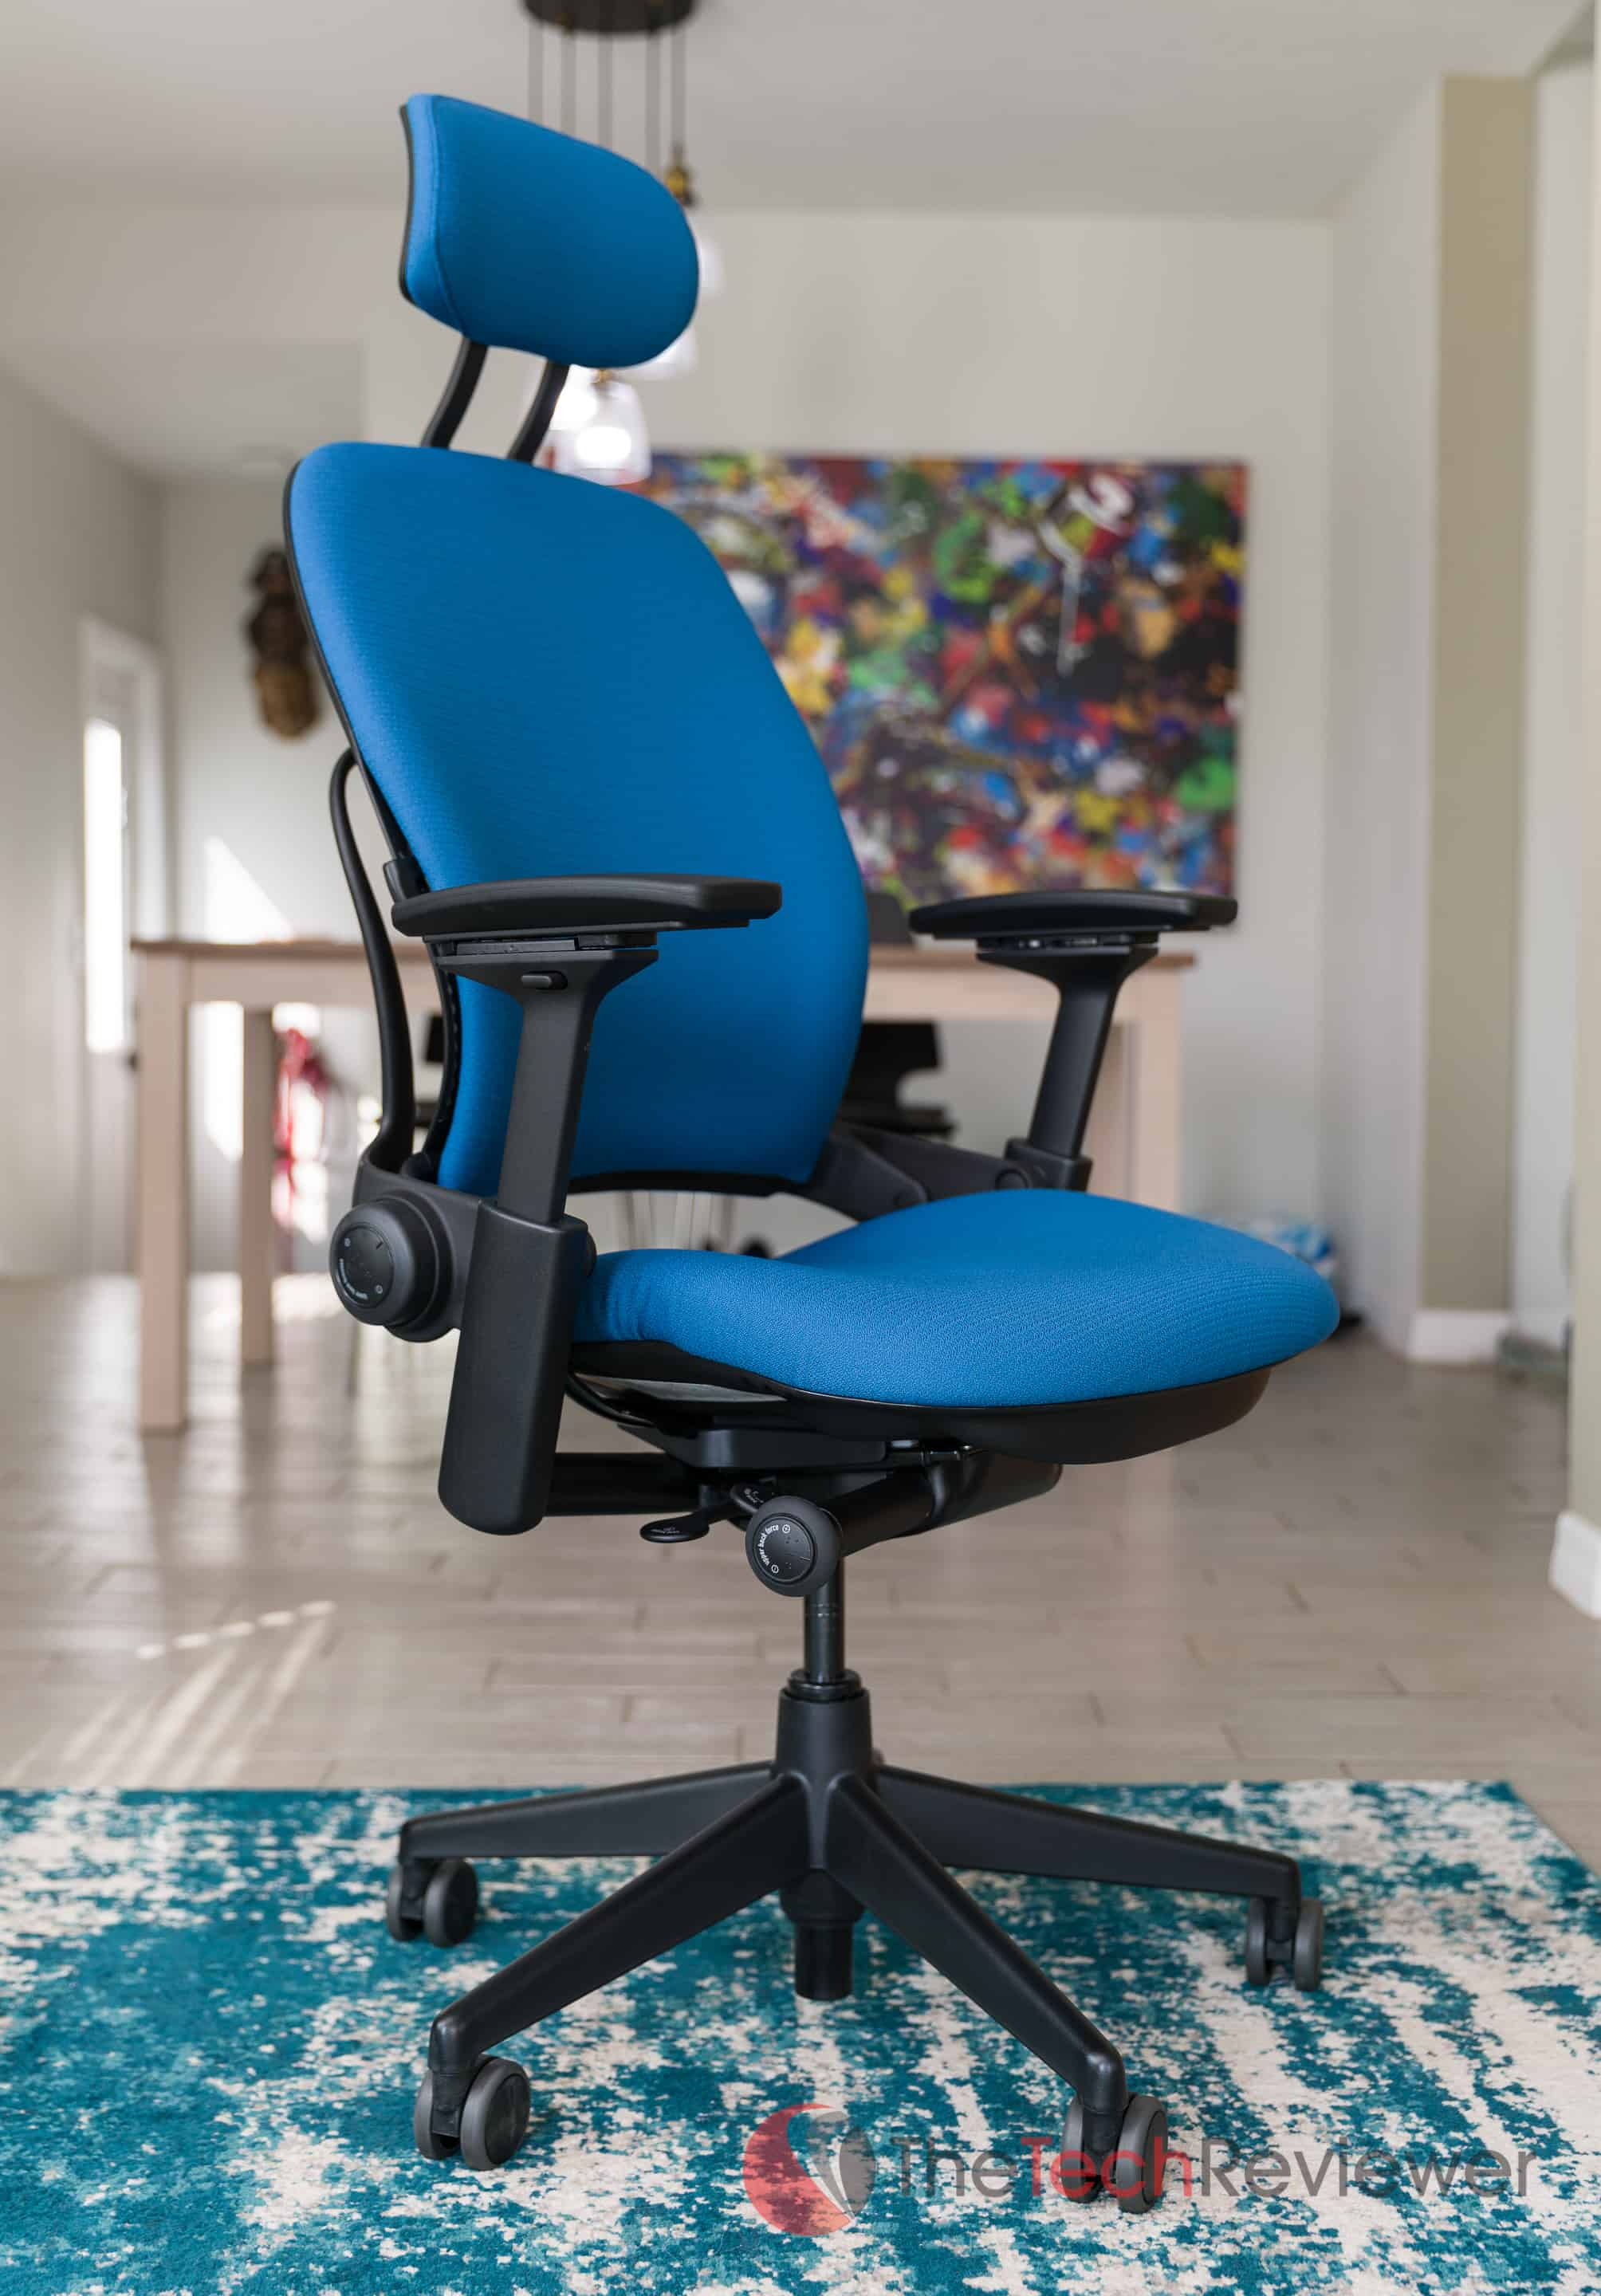 Steelcase Leap Chair Reviewed